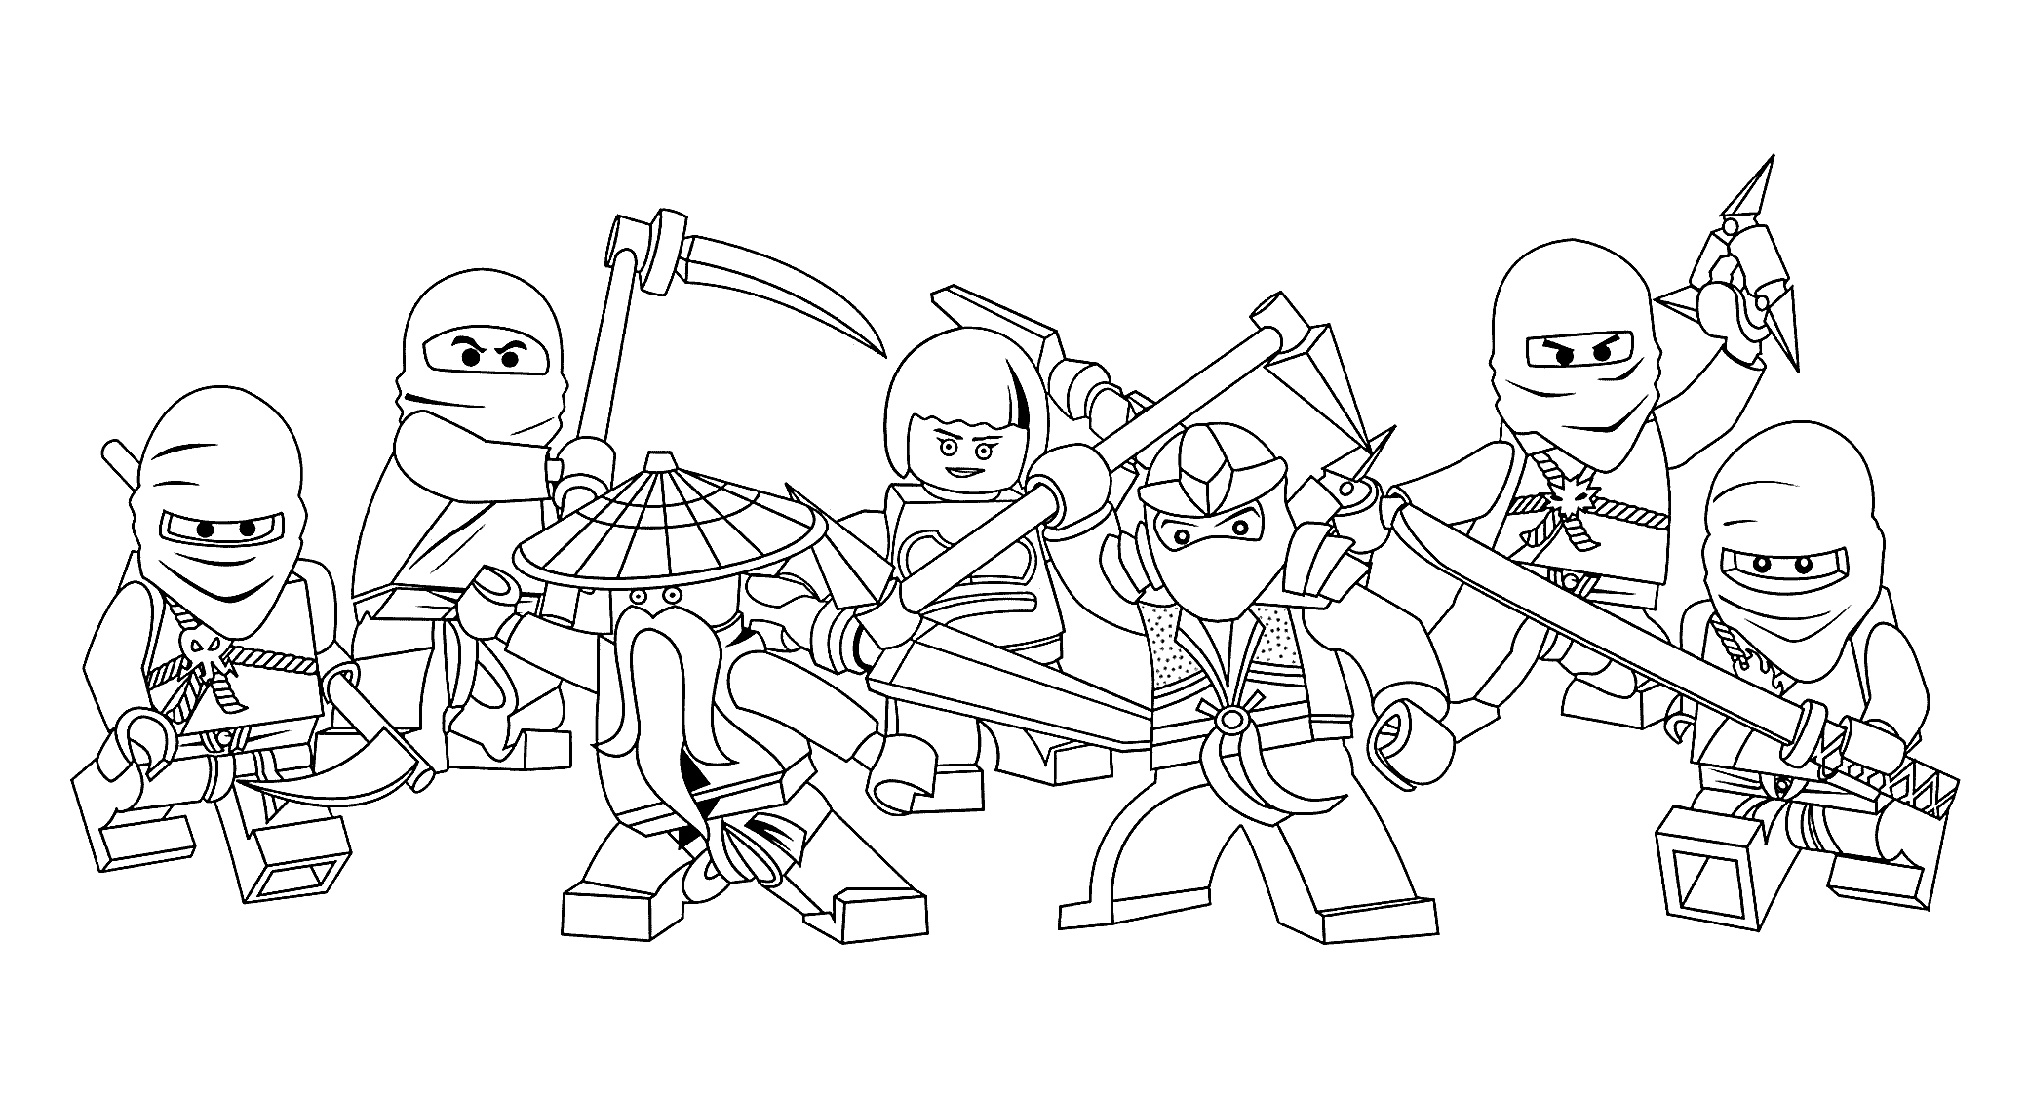 Lego Ninjago Coloring Pages Characters